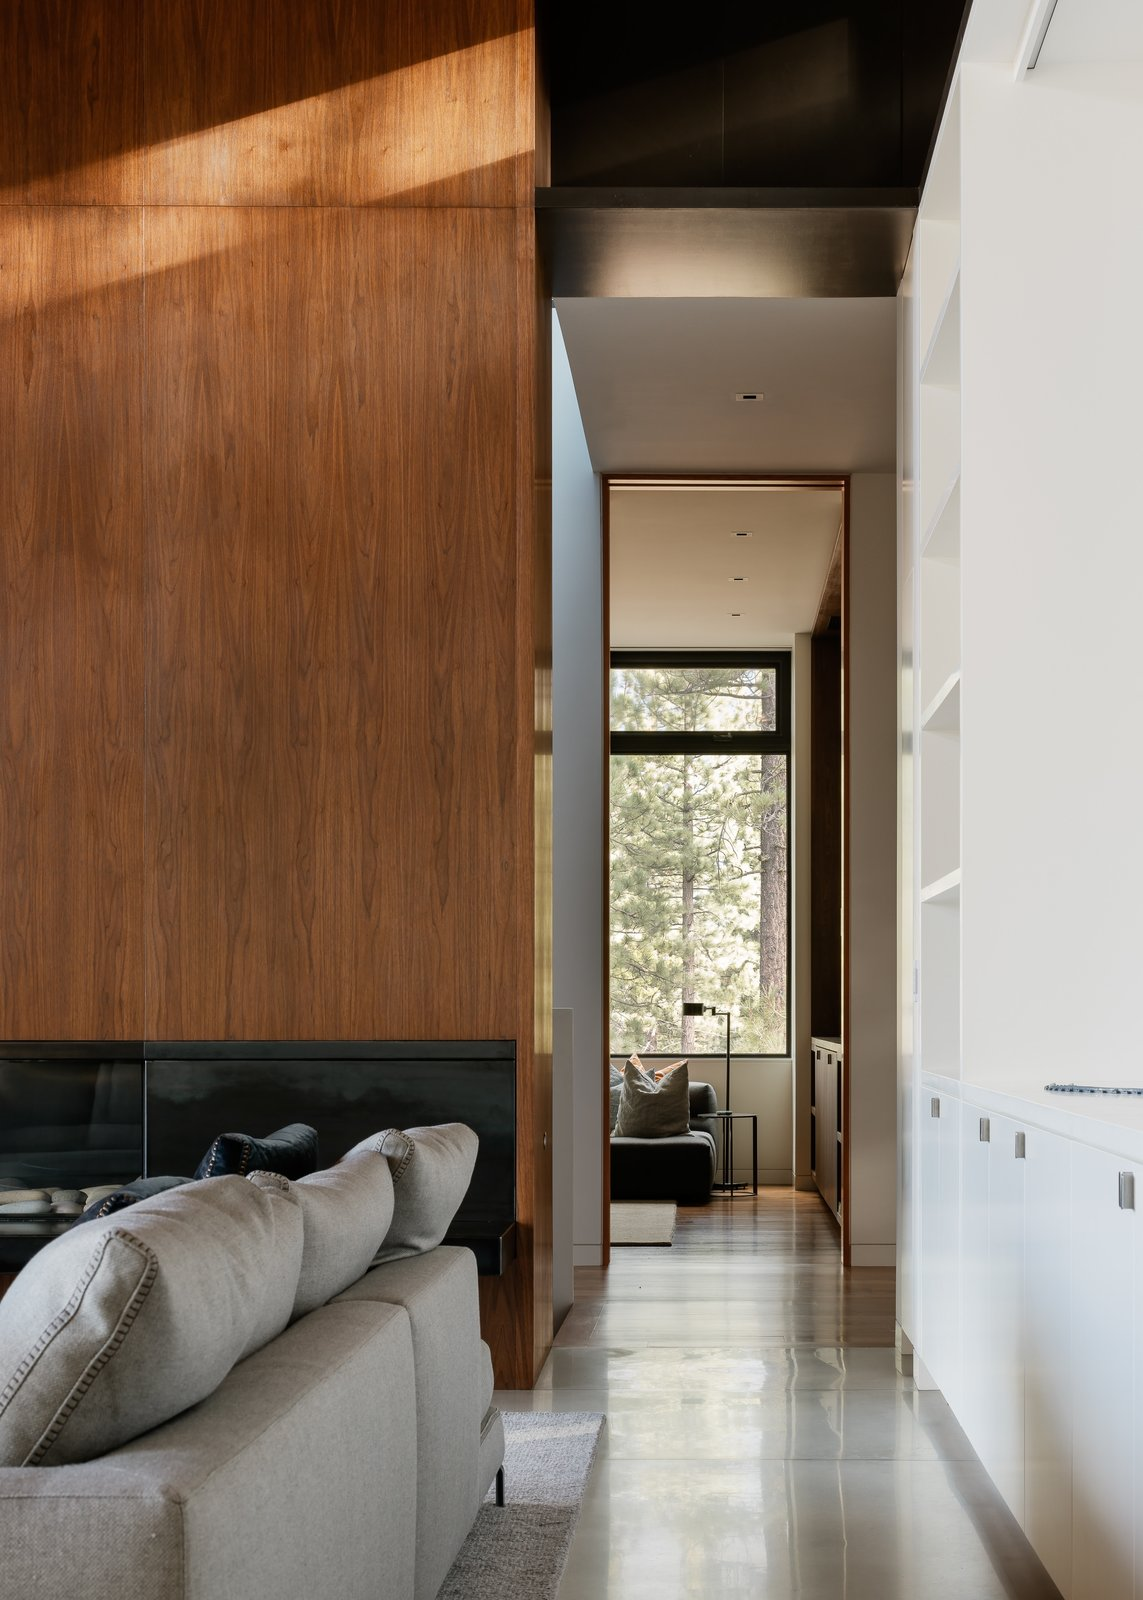 Hallway and Concrete Floor Living Room Hallway  Martis Camp Residence 1 by John Maniscalco Architecture